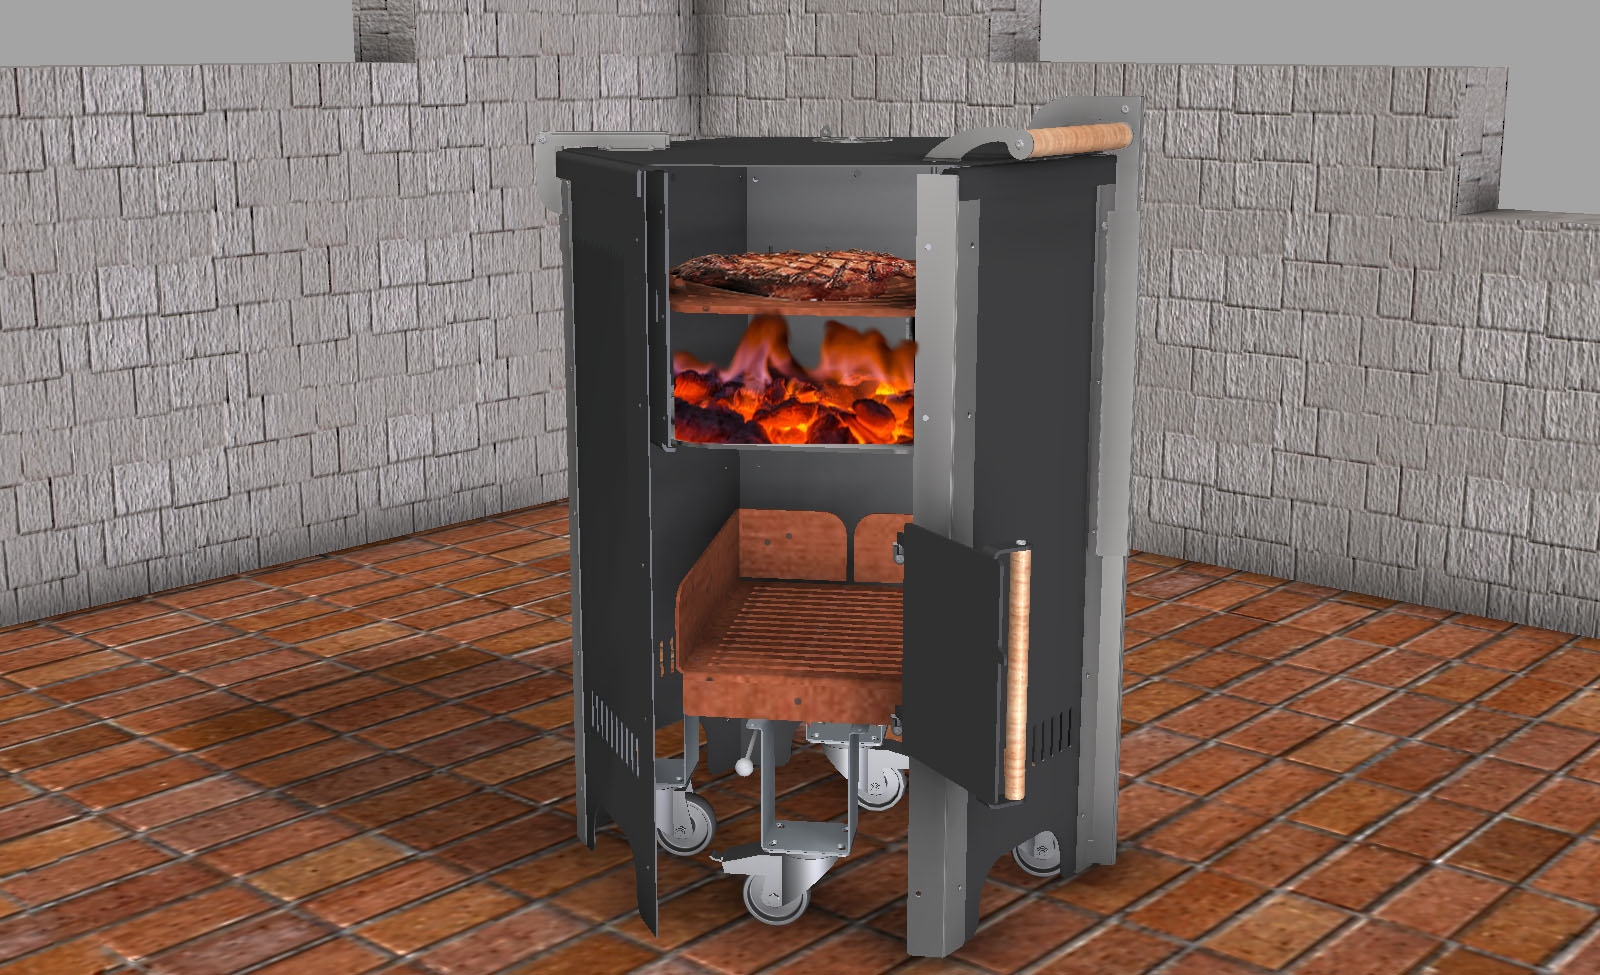 grillen mit dem firefun griller die terrassenkamin und grillmanufaktur. Black Bedroom Furniture Sets. Home Design Ideas